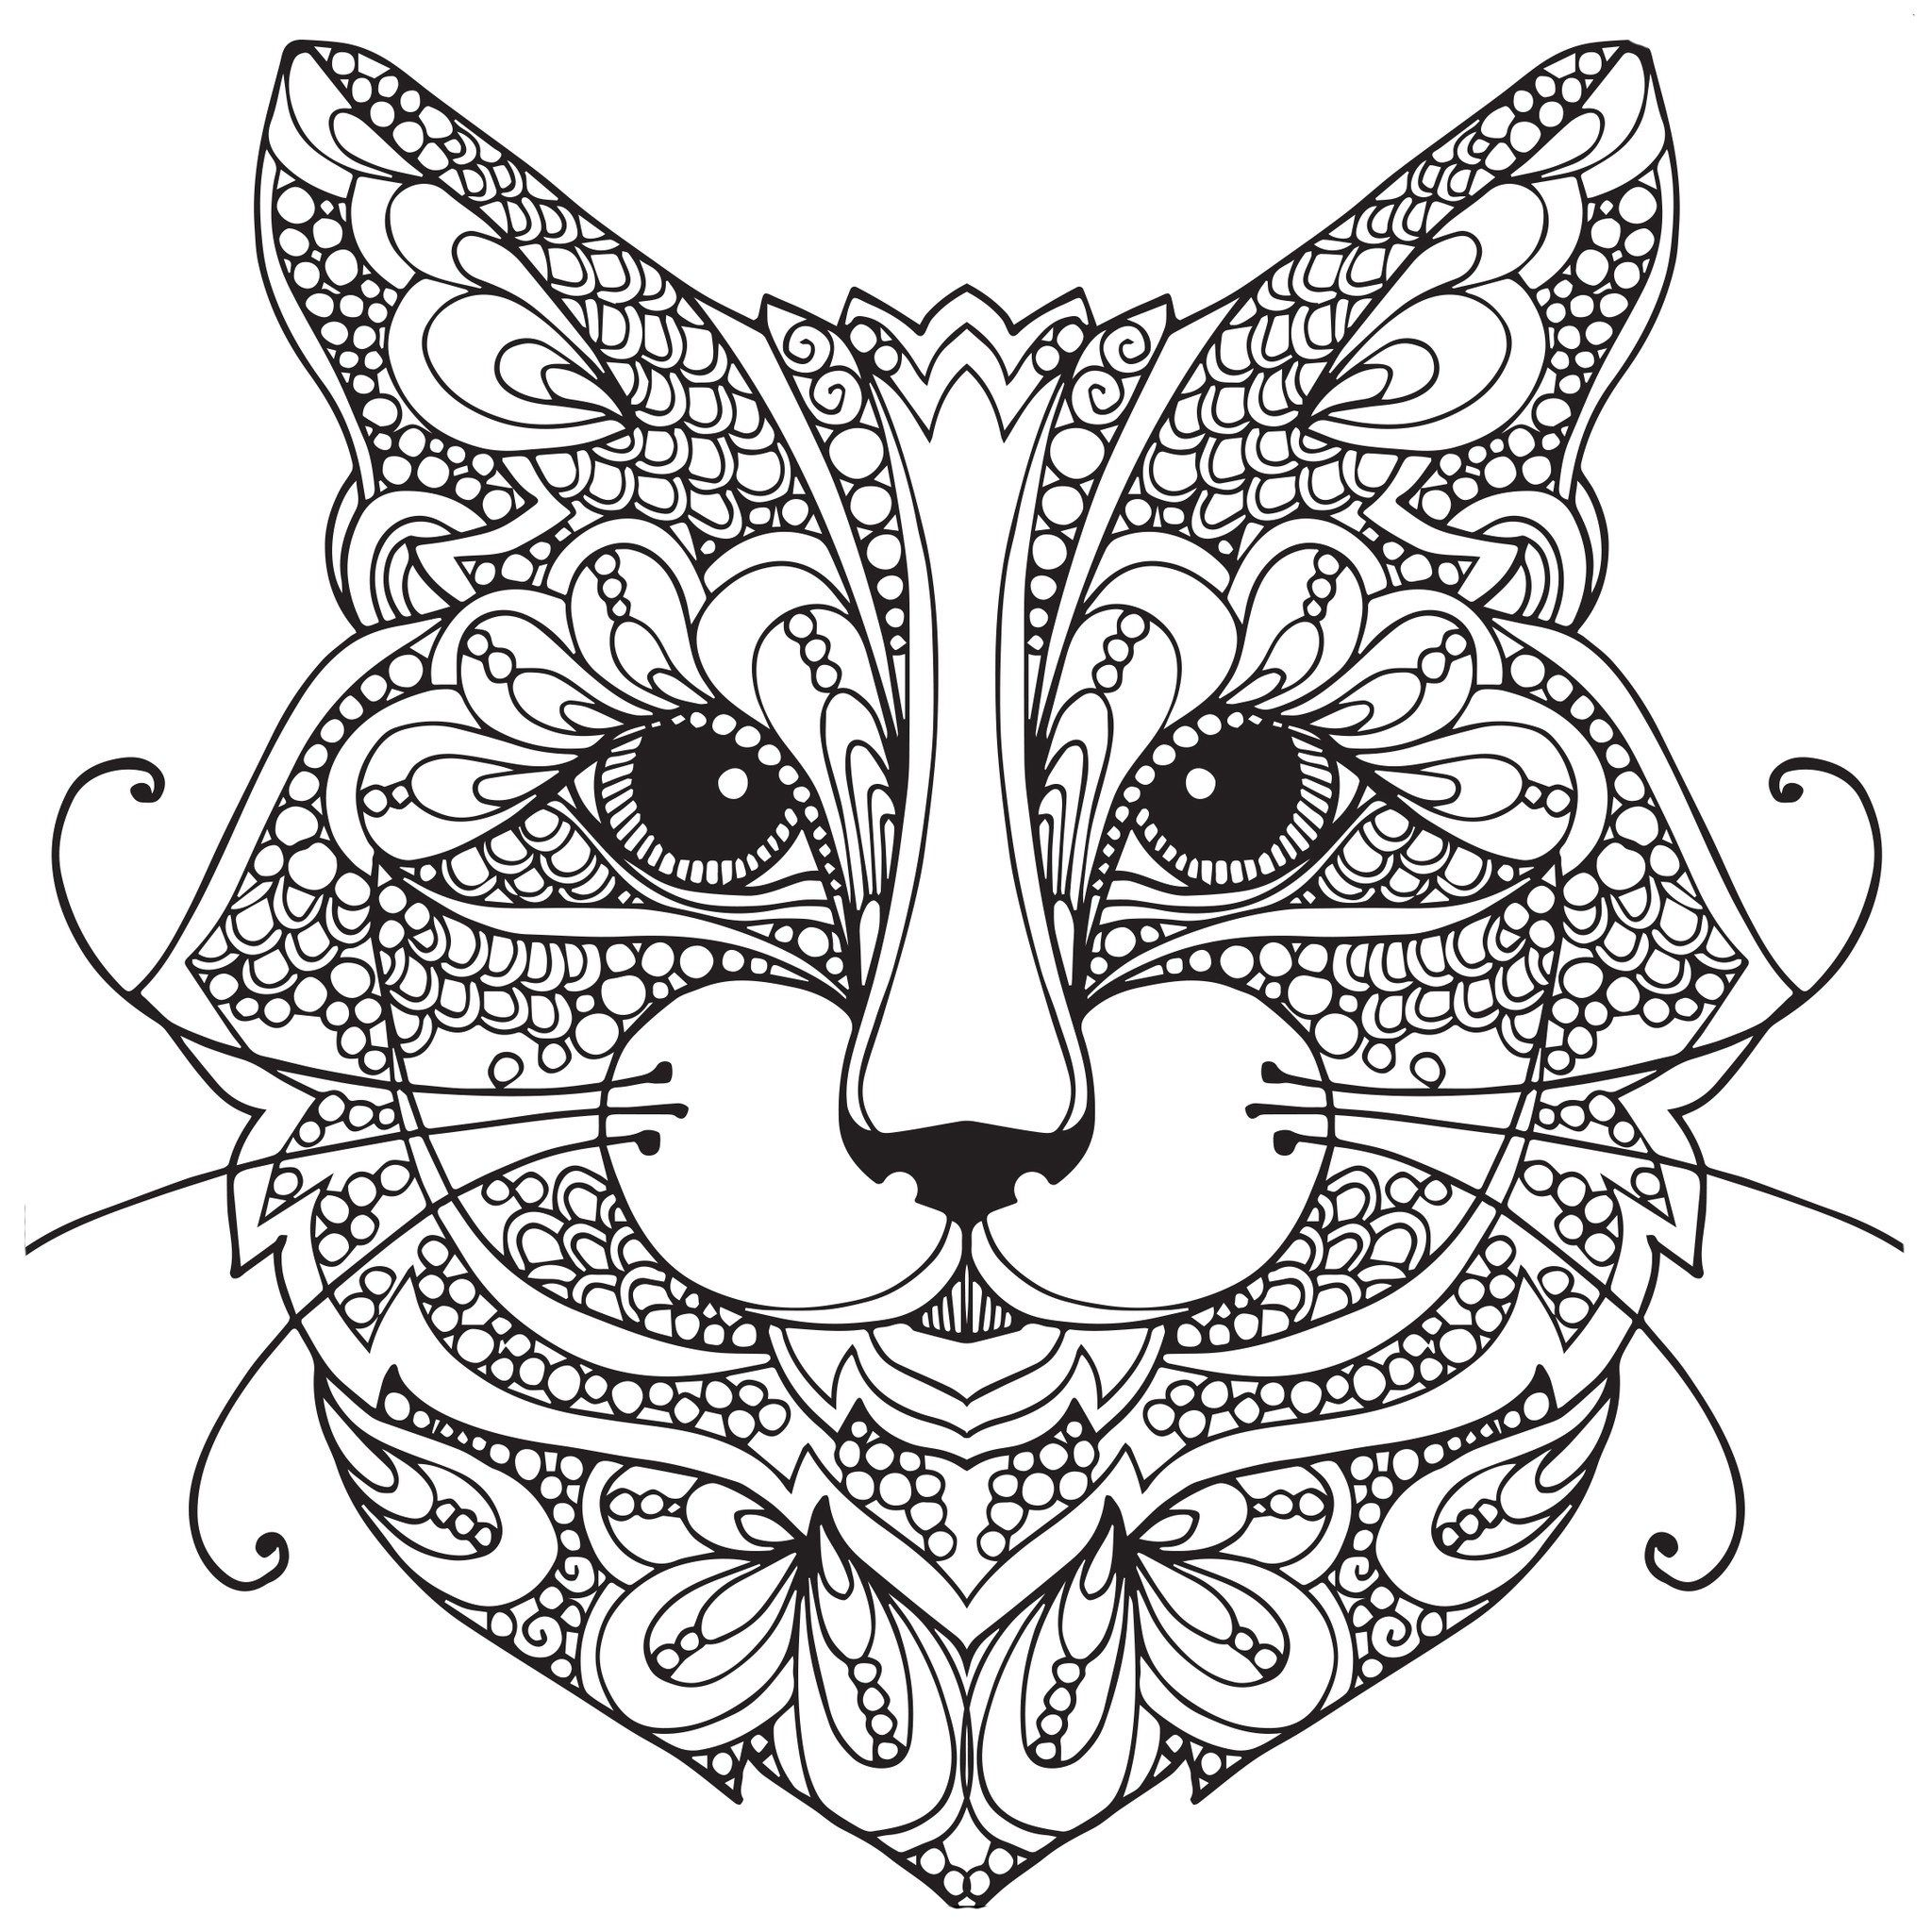 adult coloring pages cat 1 coloring pages pinterest adult coloring cat and coloring books. Black Bedroom Furniture Sets. Home Design Ideas